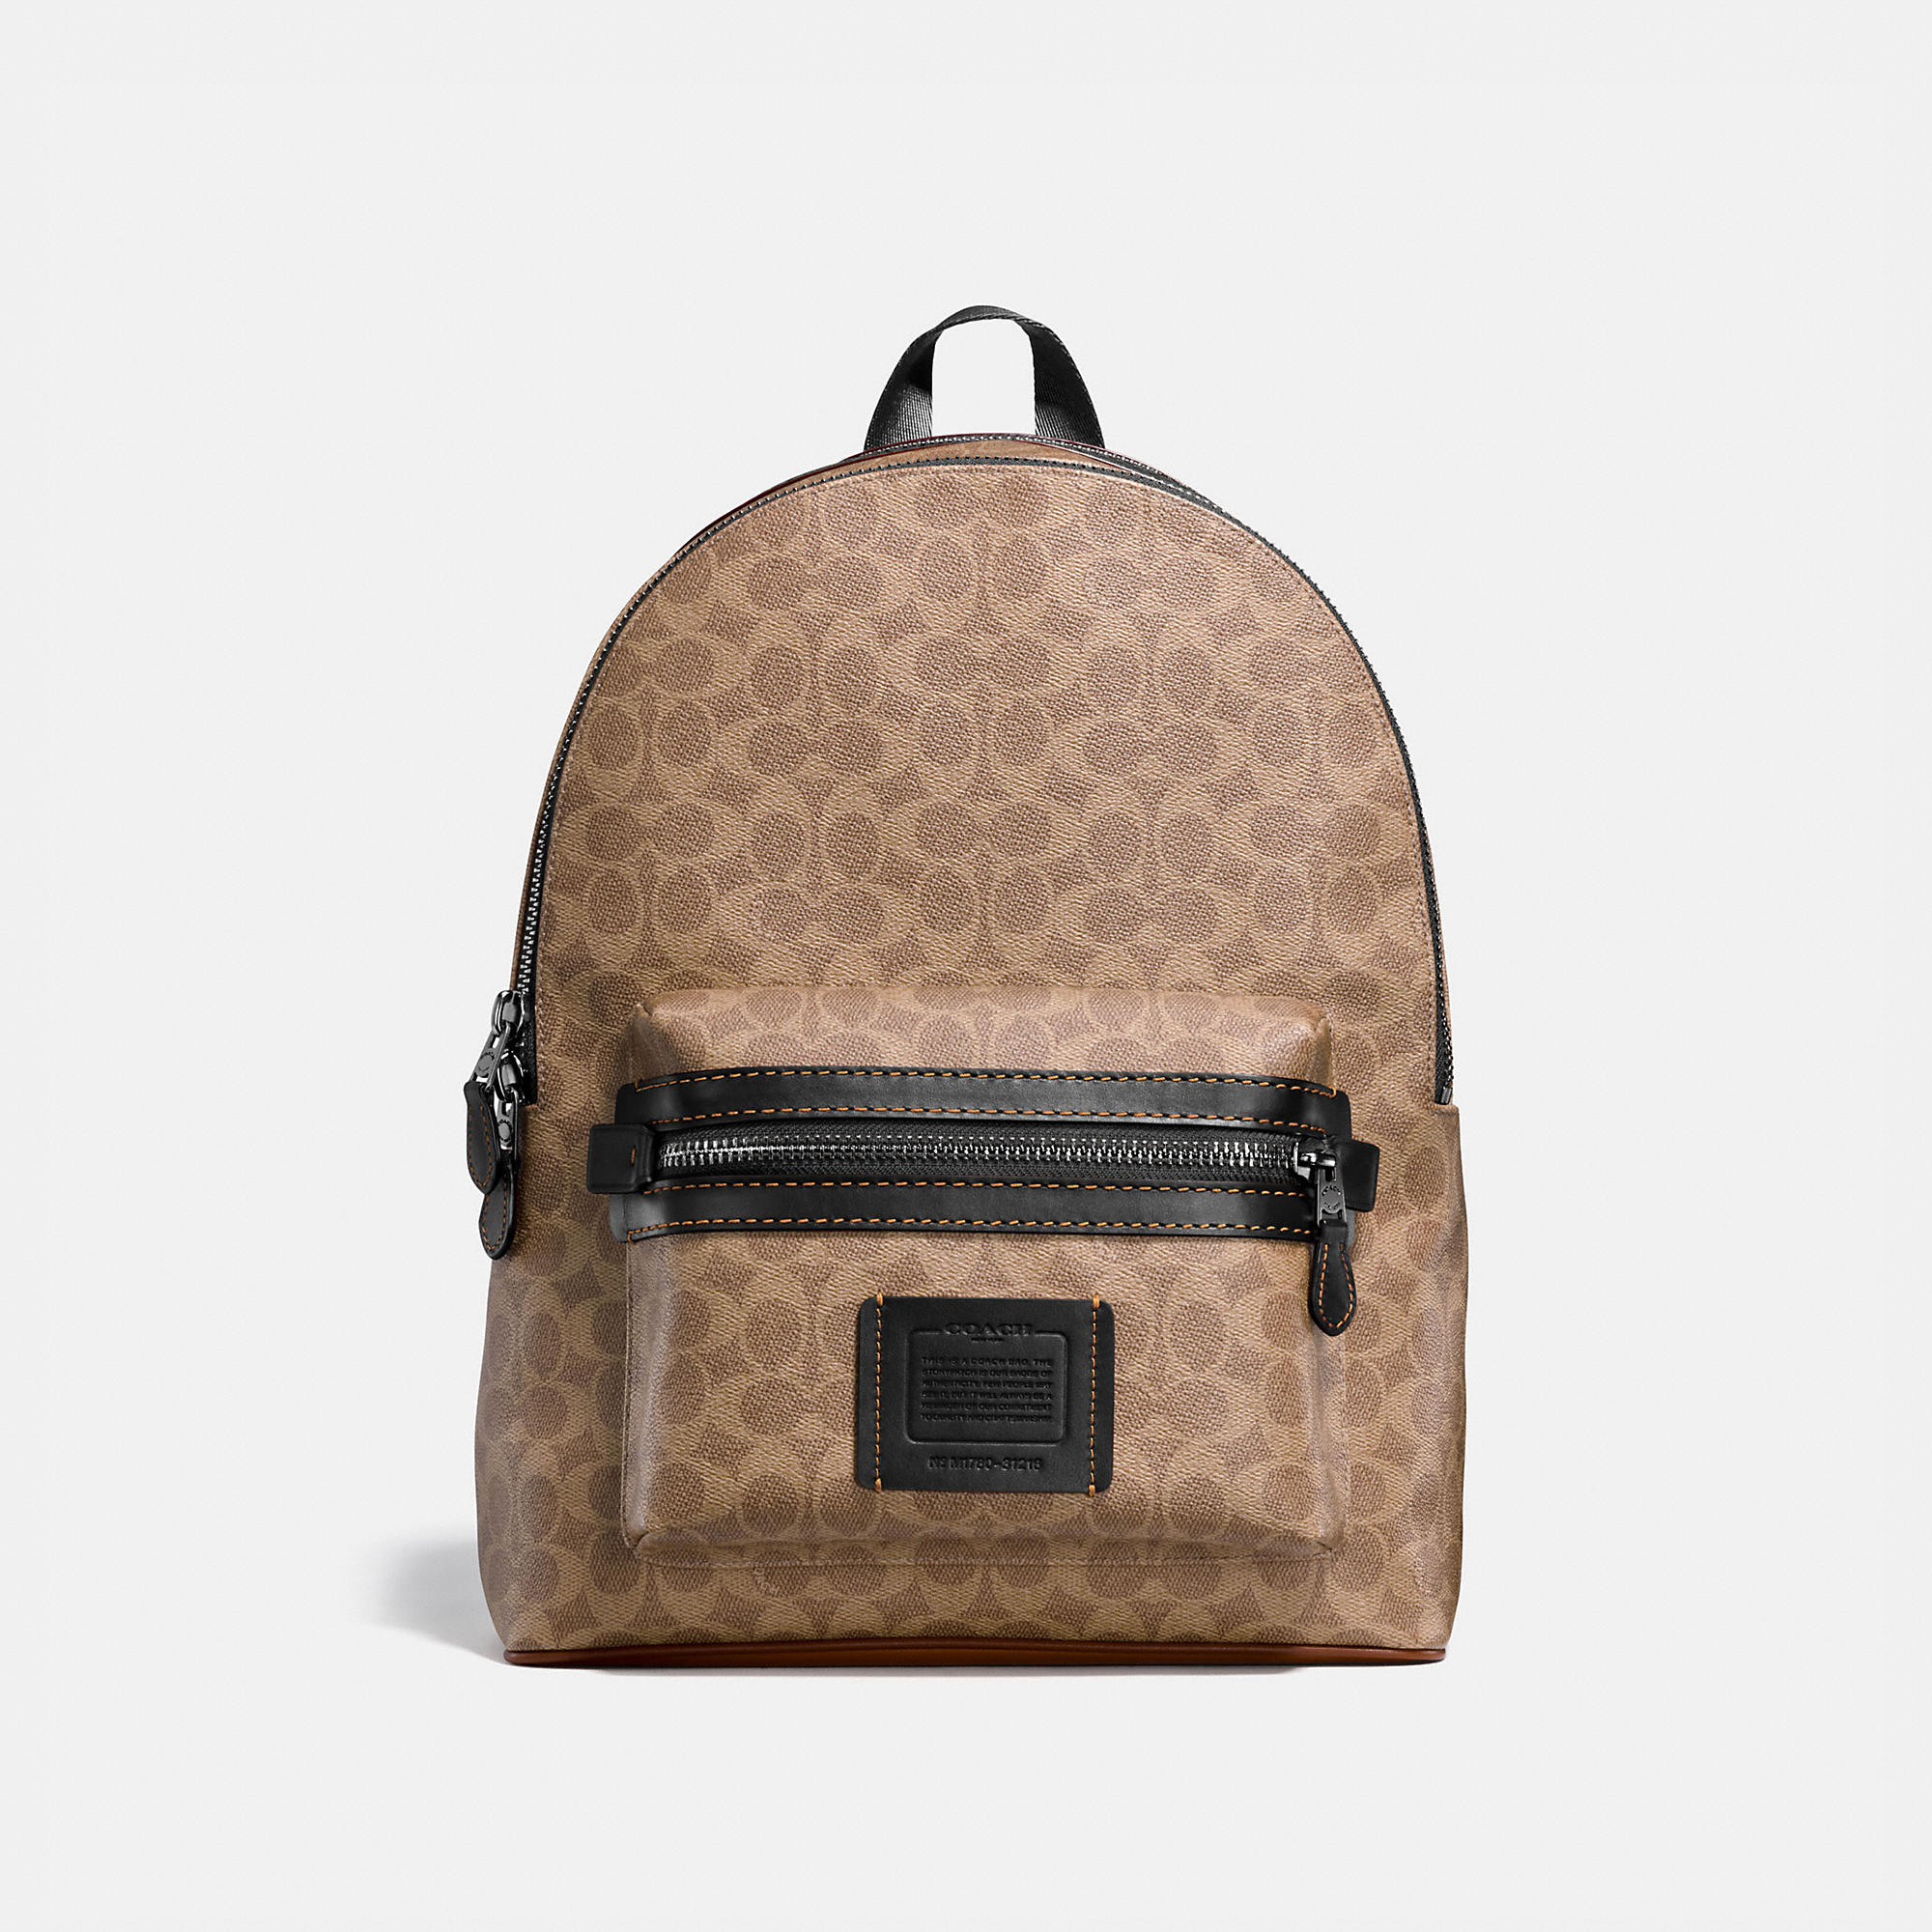 Coach COACH ACADEMY BACKPACK IN SIGNATURE CANVAS - MEN'S